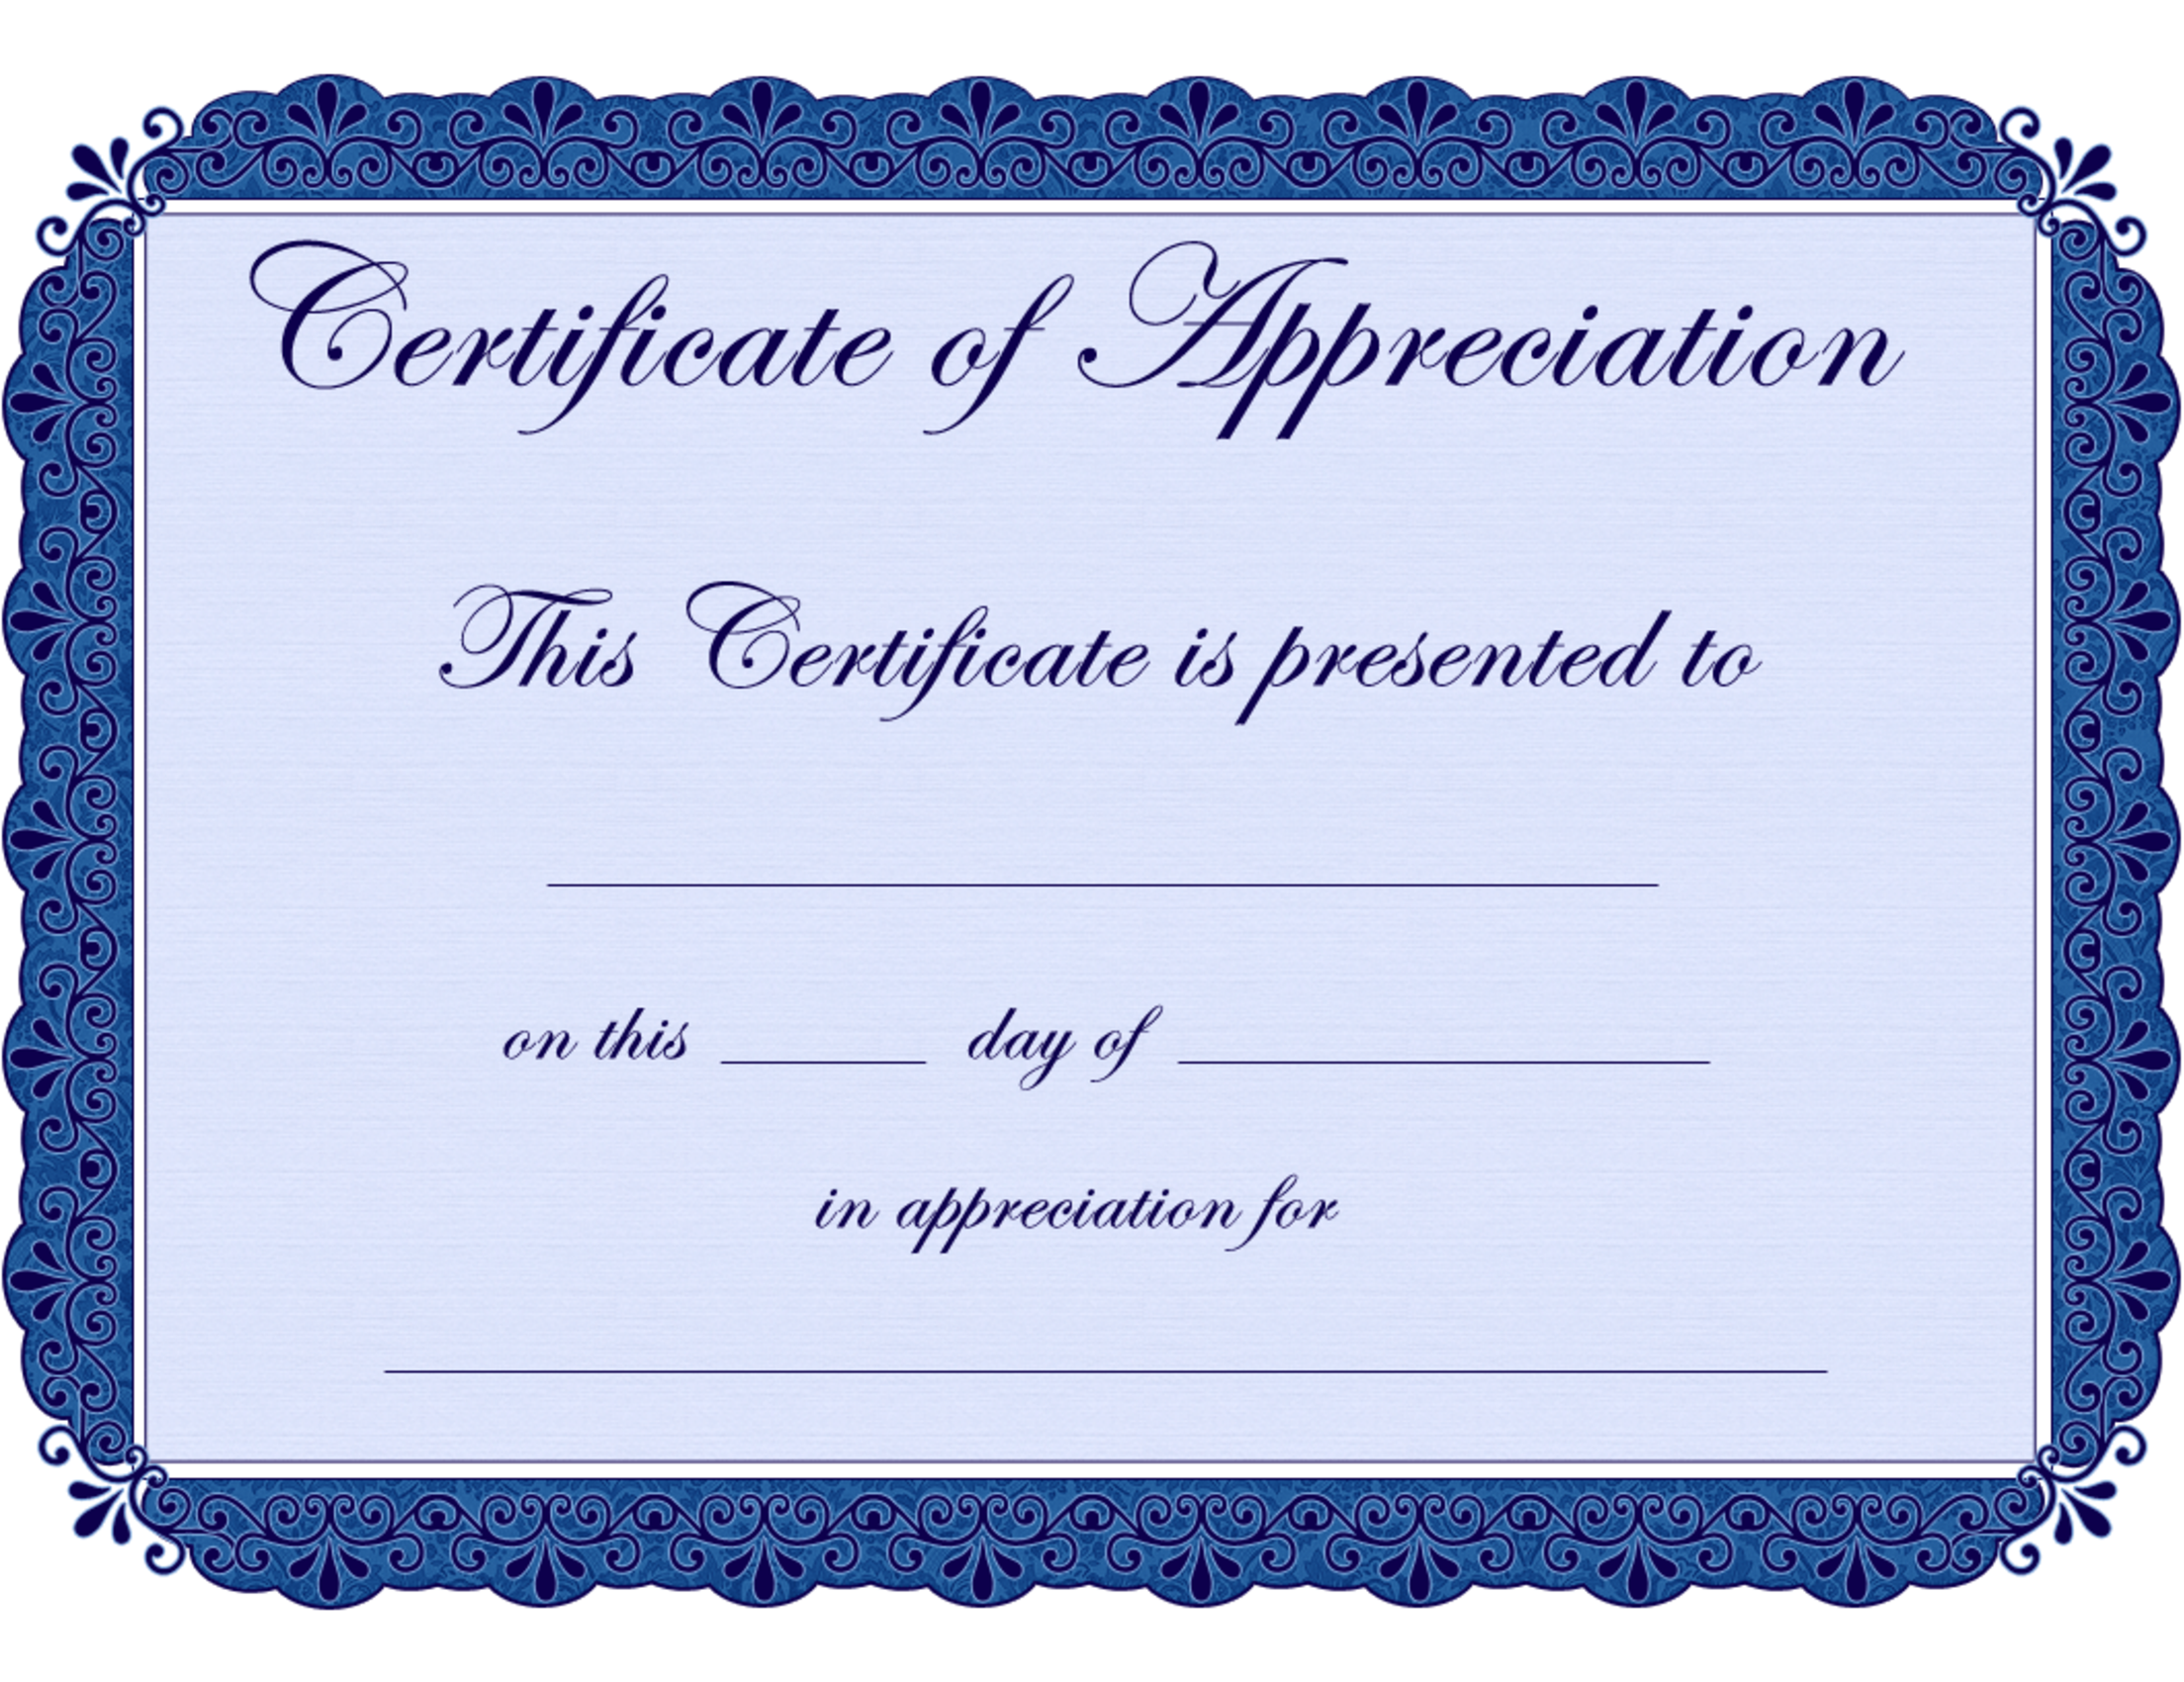 Free Printable Certificates Certificate Of Appreciation Certificate ... |  Certificate Of Appreciation | Pinterest | Free Printable Certificates, ...  Microsoft Certificate Maker